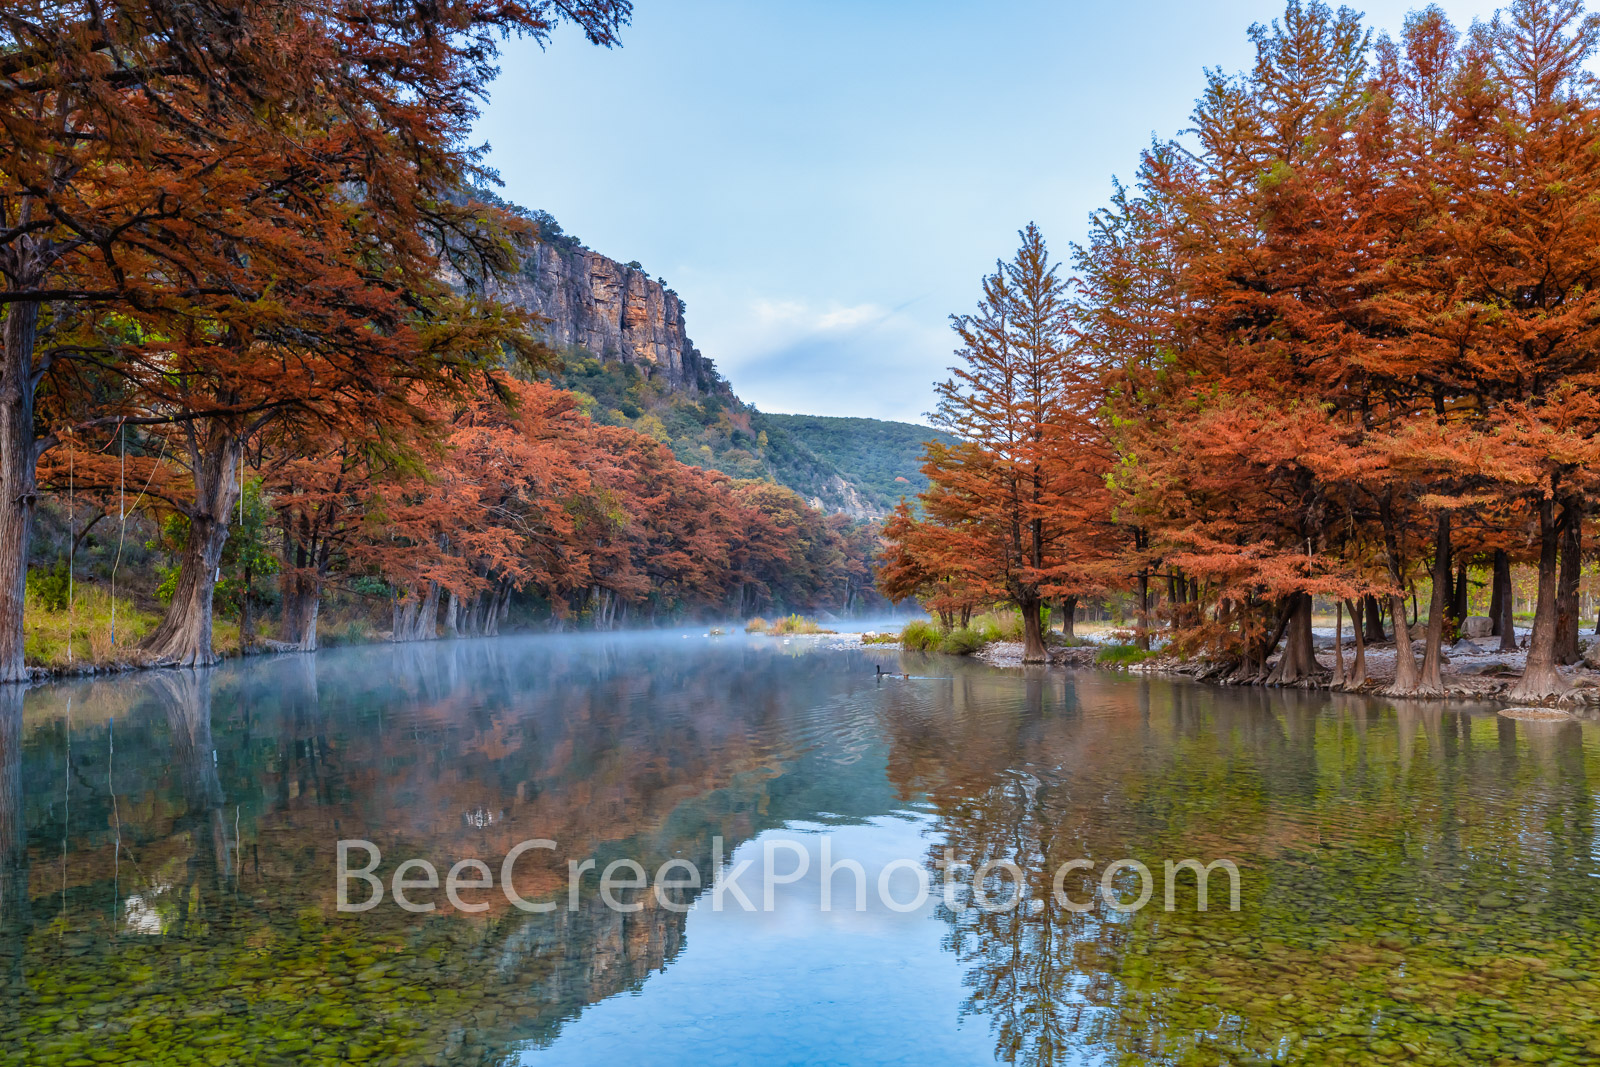 Falls Colors Along the River - Early morning while we waited to get into a garner state park  we capture this fall scenery down...